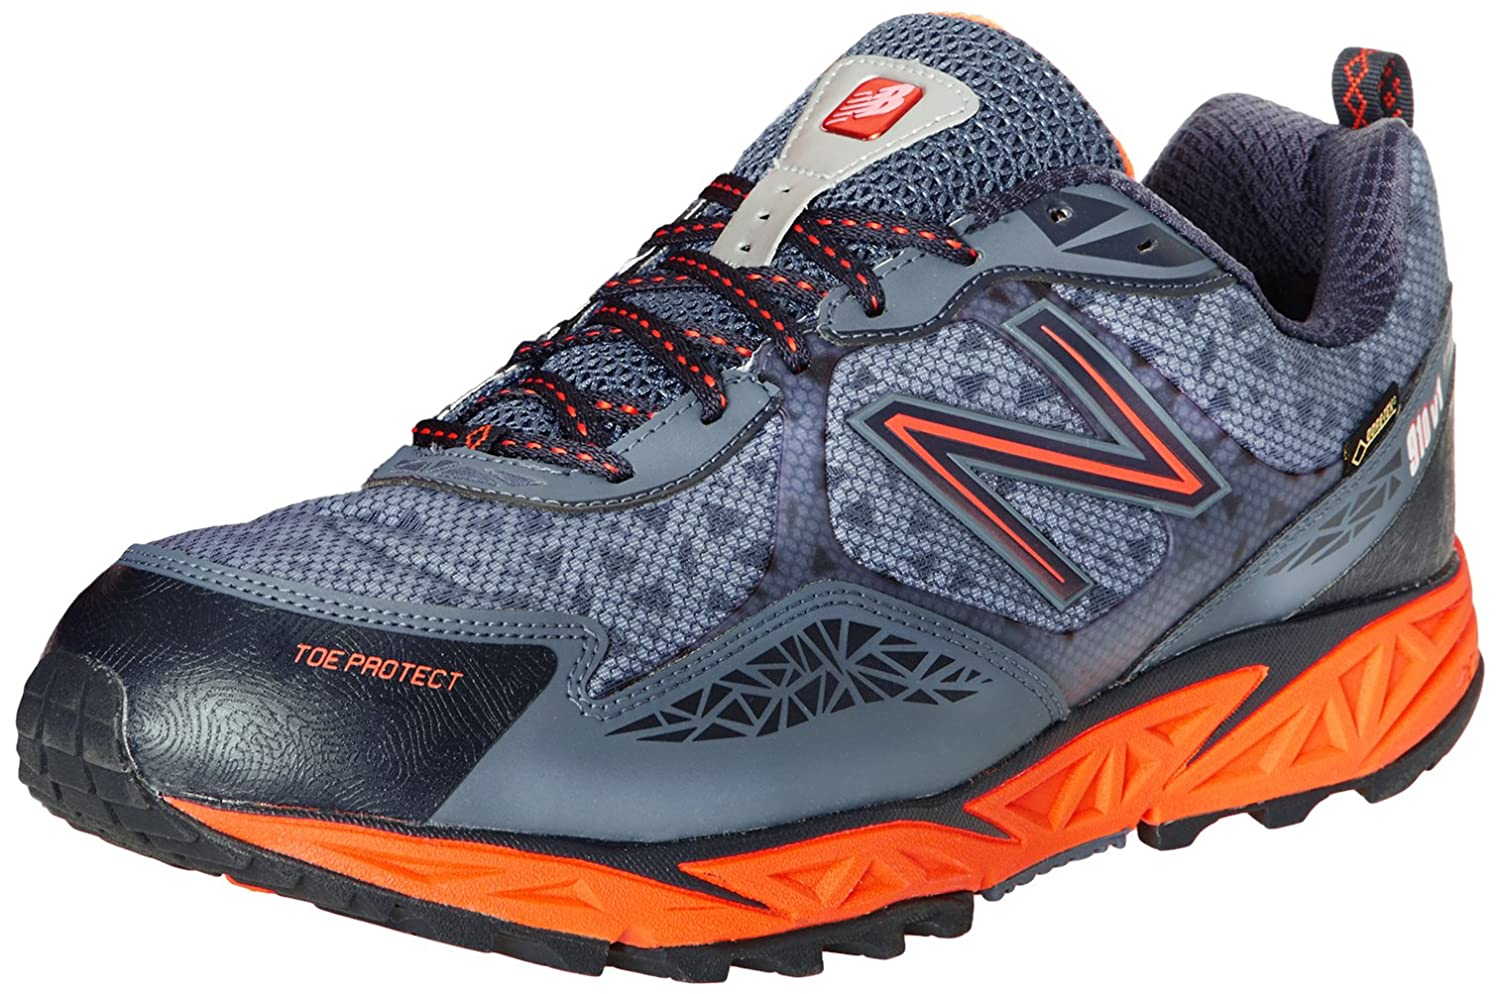 | New Balance Men's MT910 NBx Goretex Trail Shoe